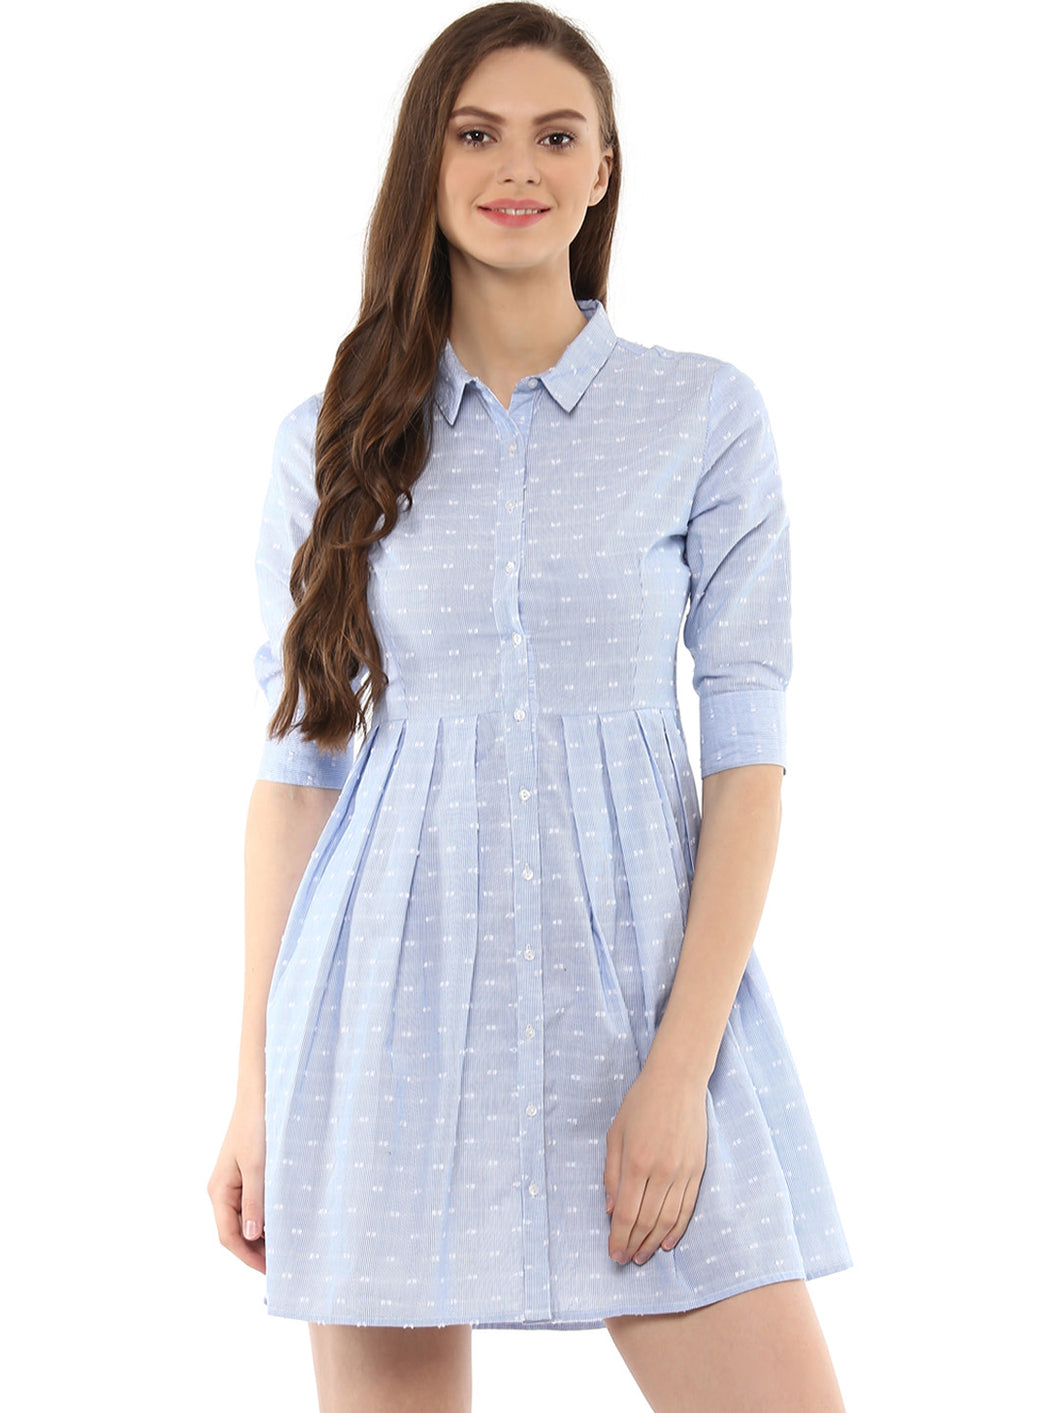 Queen ellie Women Blue Self-Striped Pleated Shirt Dress